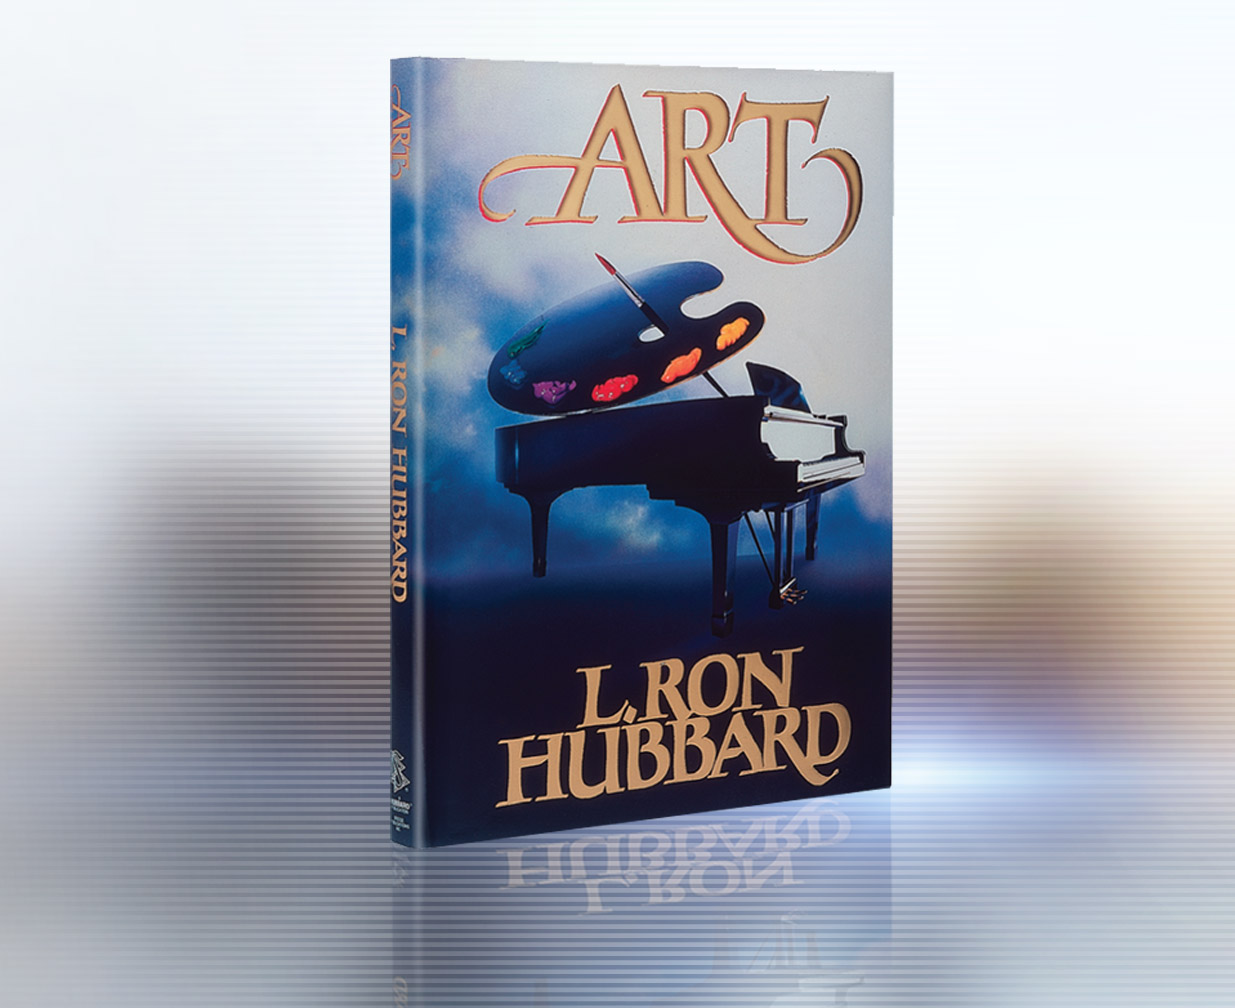 Citaten Over Kunst : L ron hubbard biografie kunstenaar filosoof art book